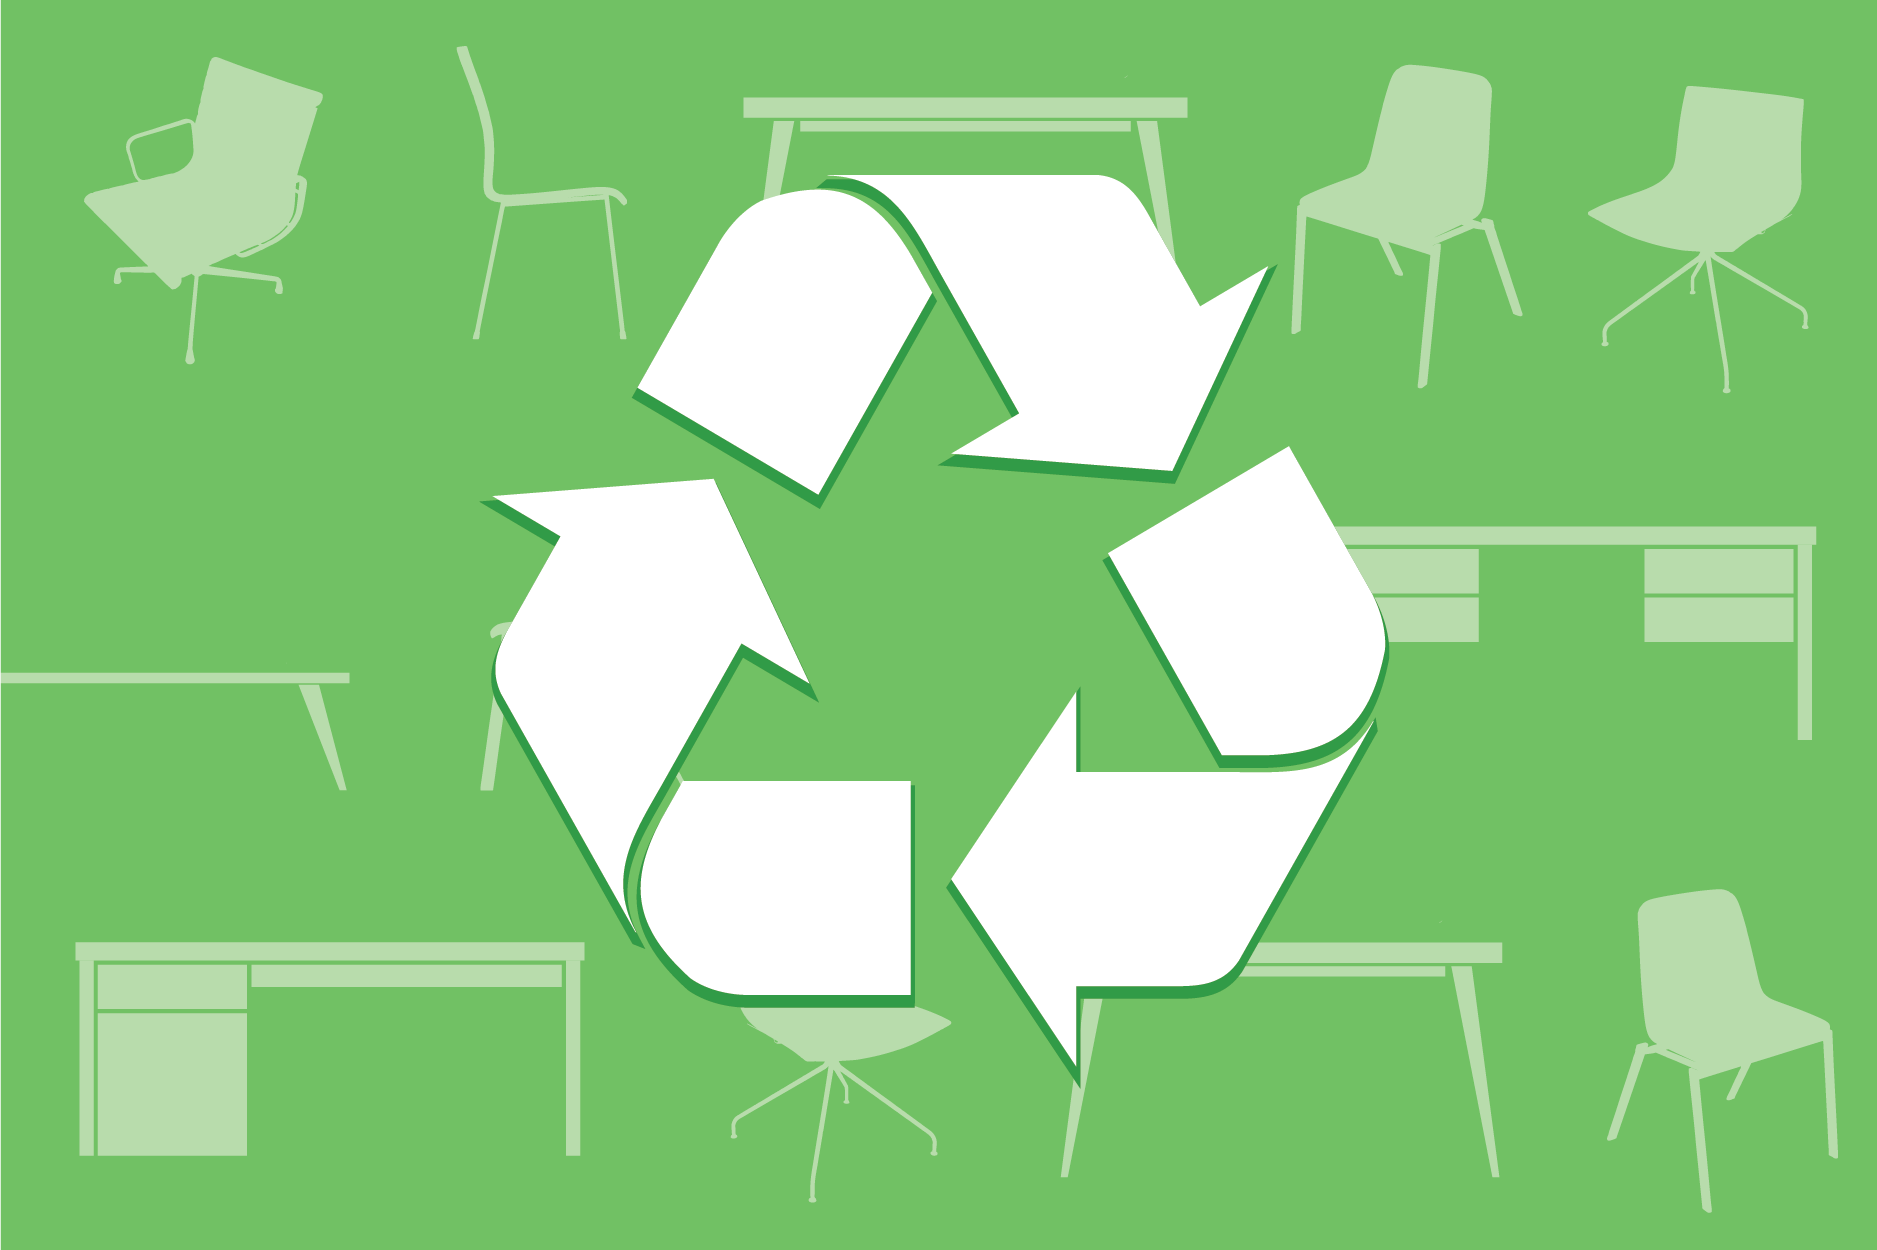 Recycle unused furniture to make room for new needs and uses in your workspace continental office